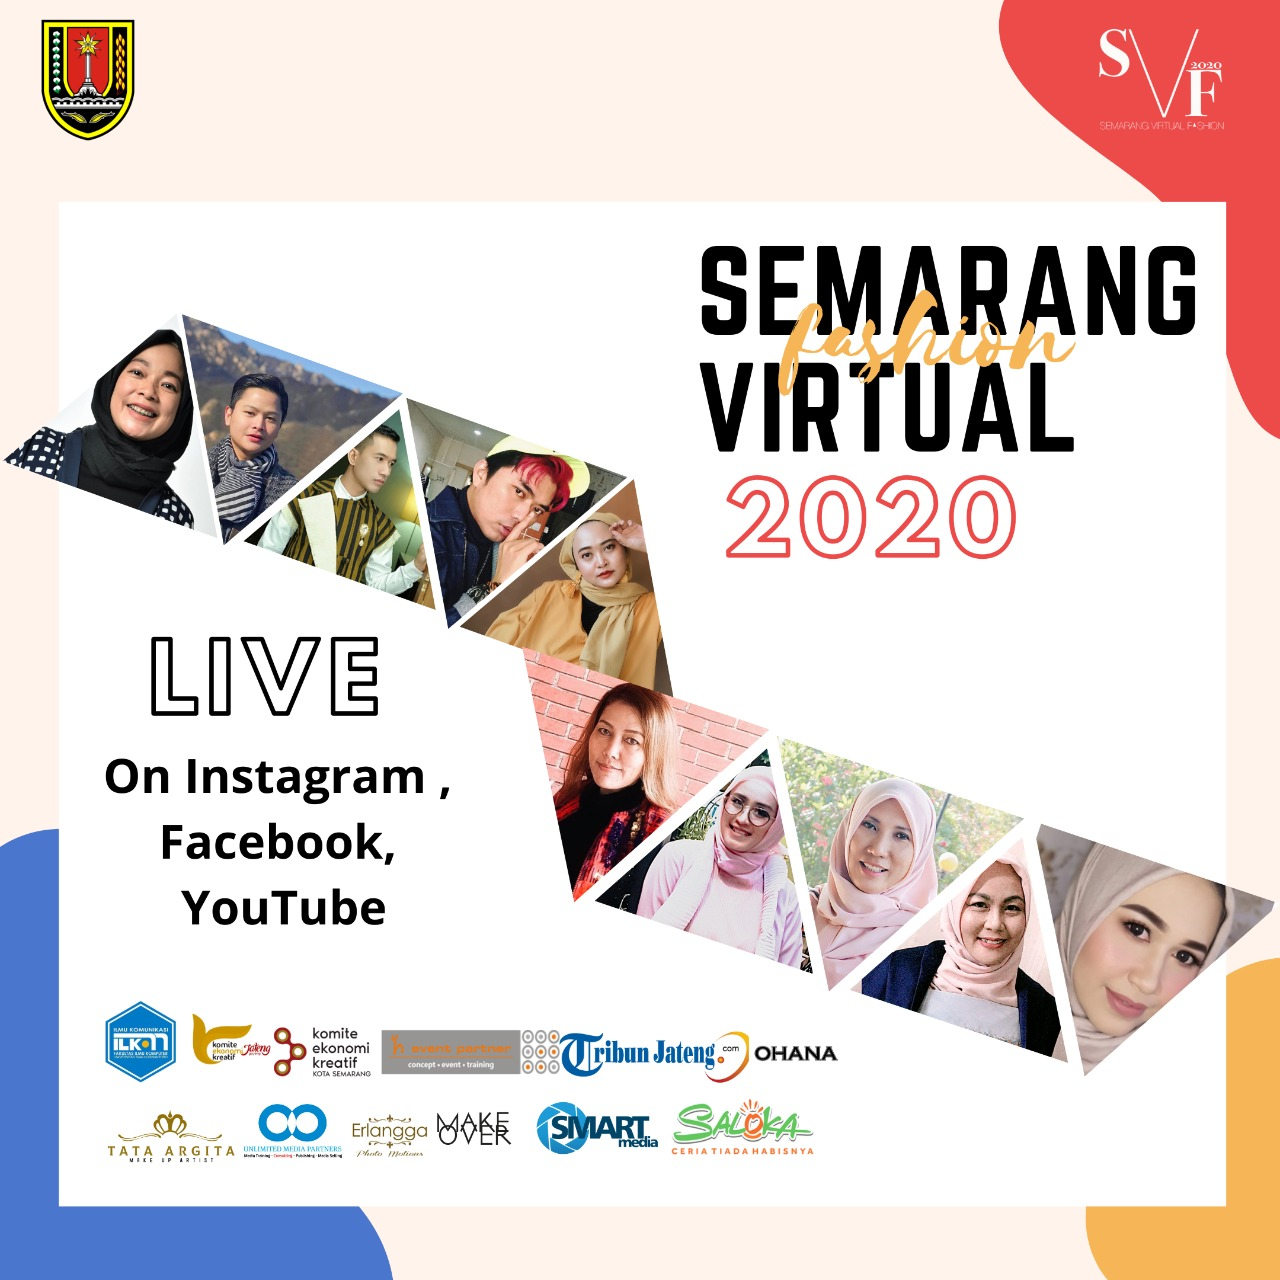 SEMARANG VIRTUAL FASHION 2020